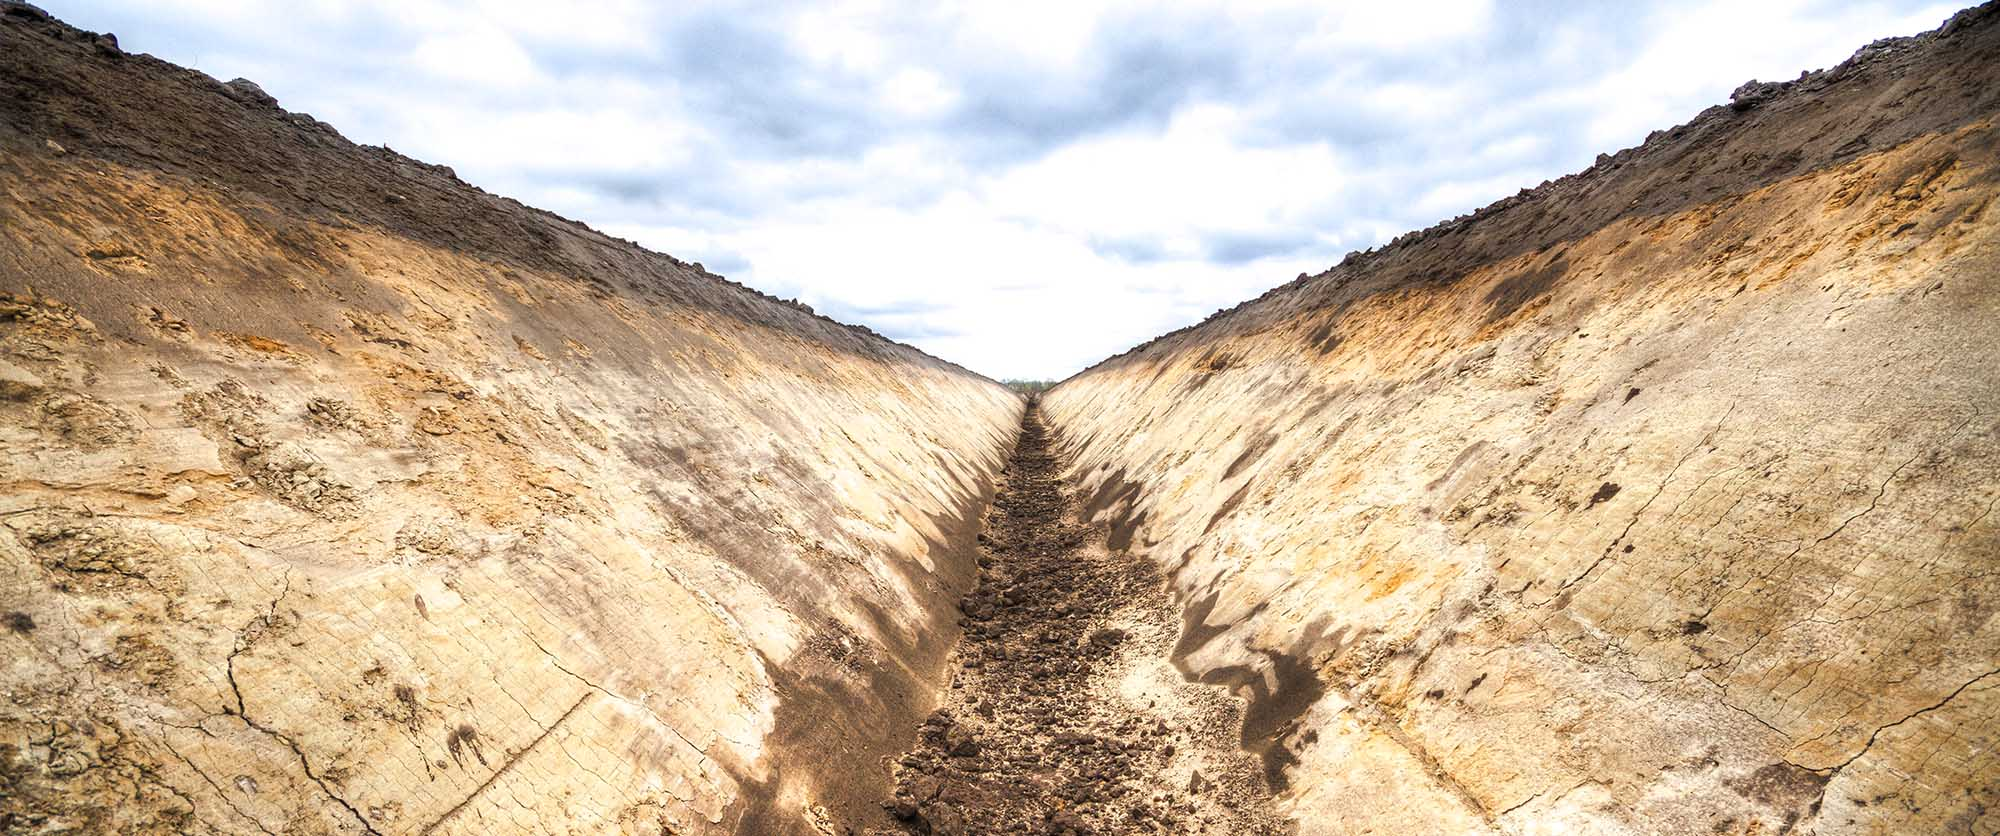 Freshly dug field drainage ditch showing soil stratification under a sky with dark clouds